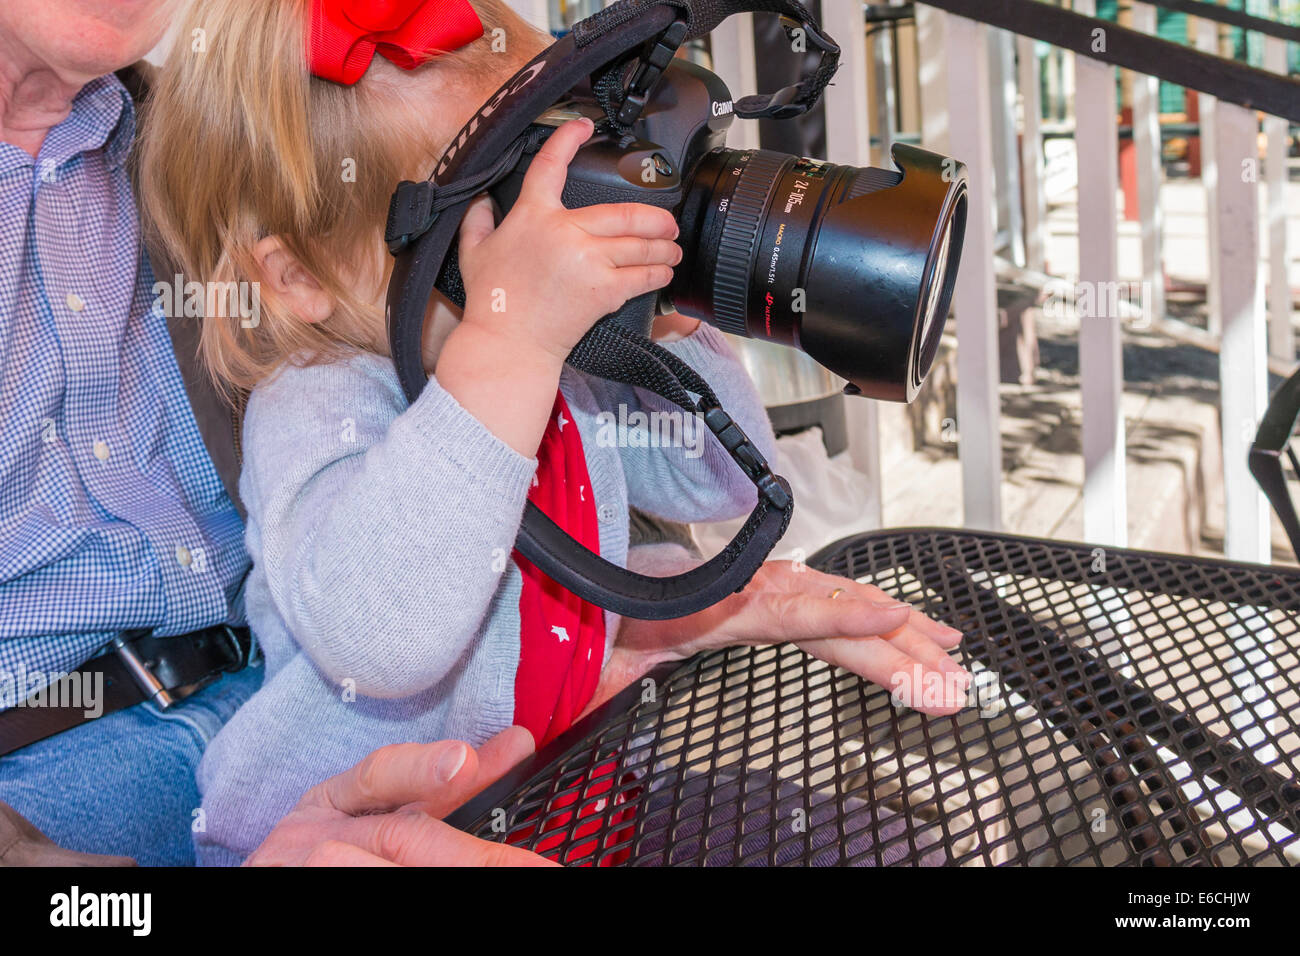 Little girl with a big camera. - Stock Image